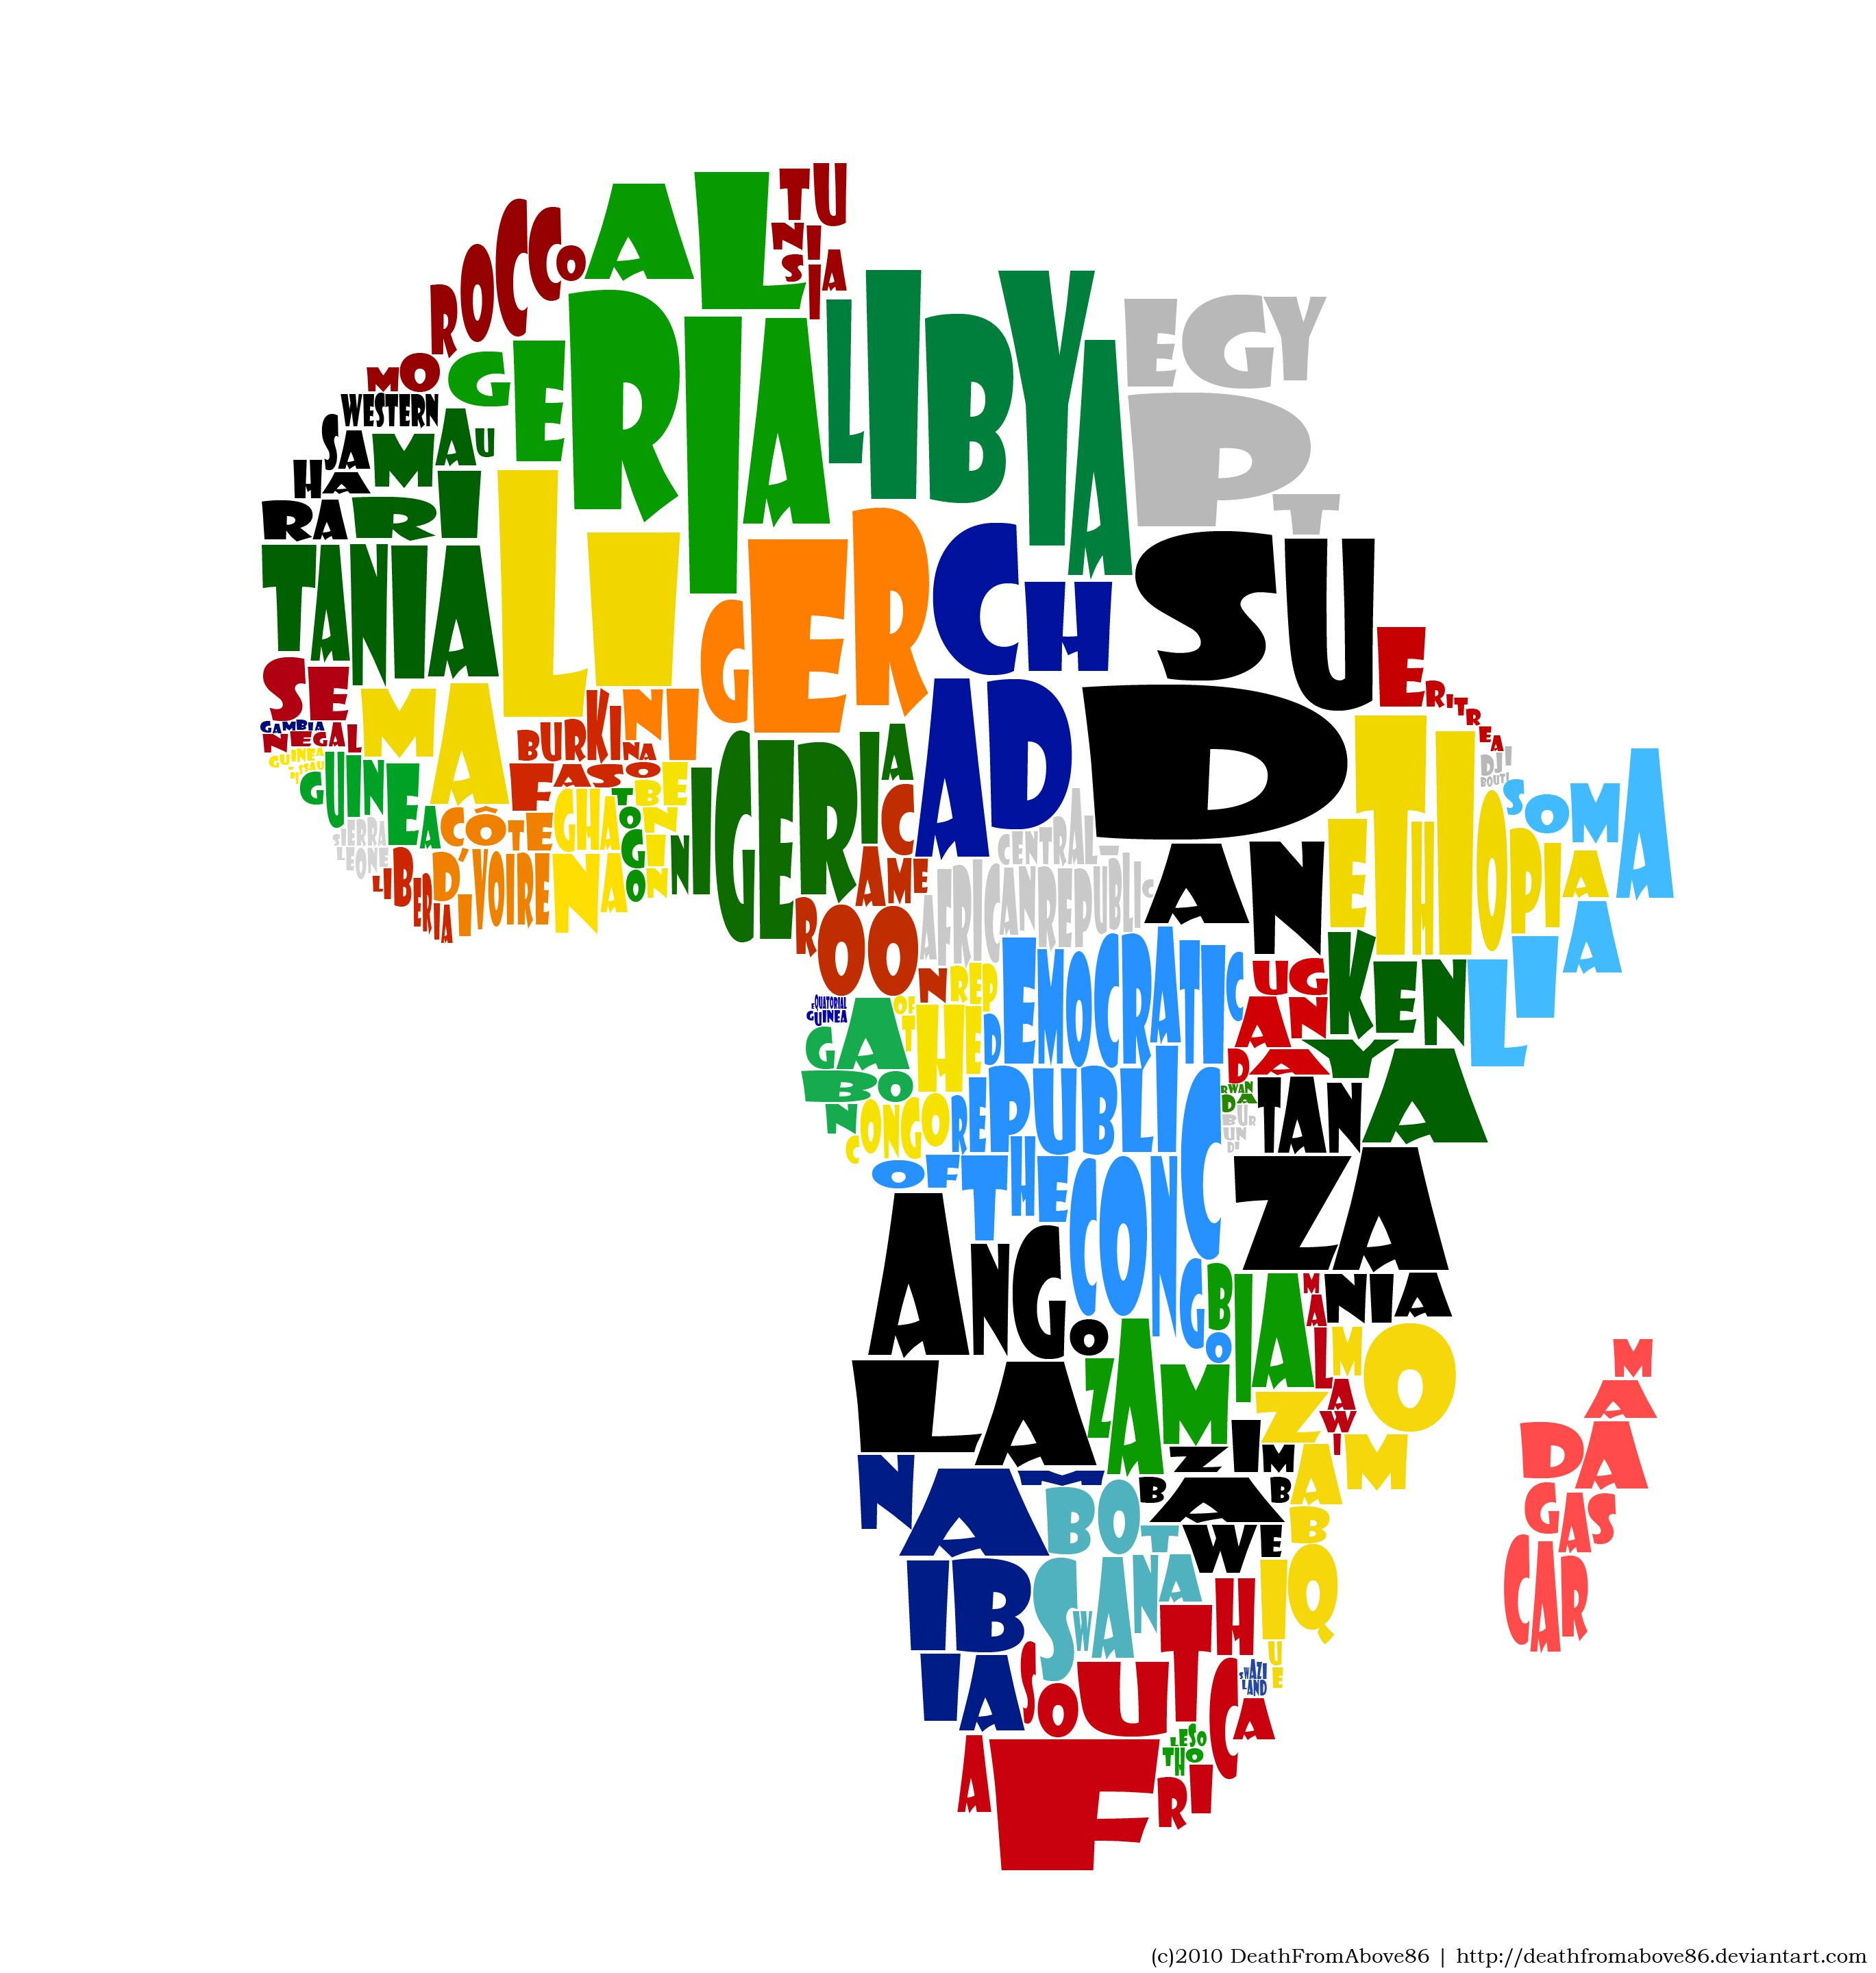 AFRICA maybe one of the coolest things ive seen Graphic Design